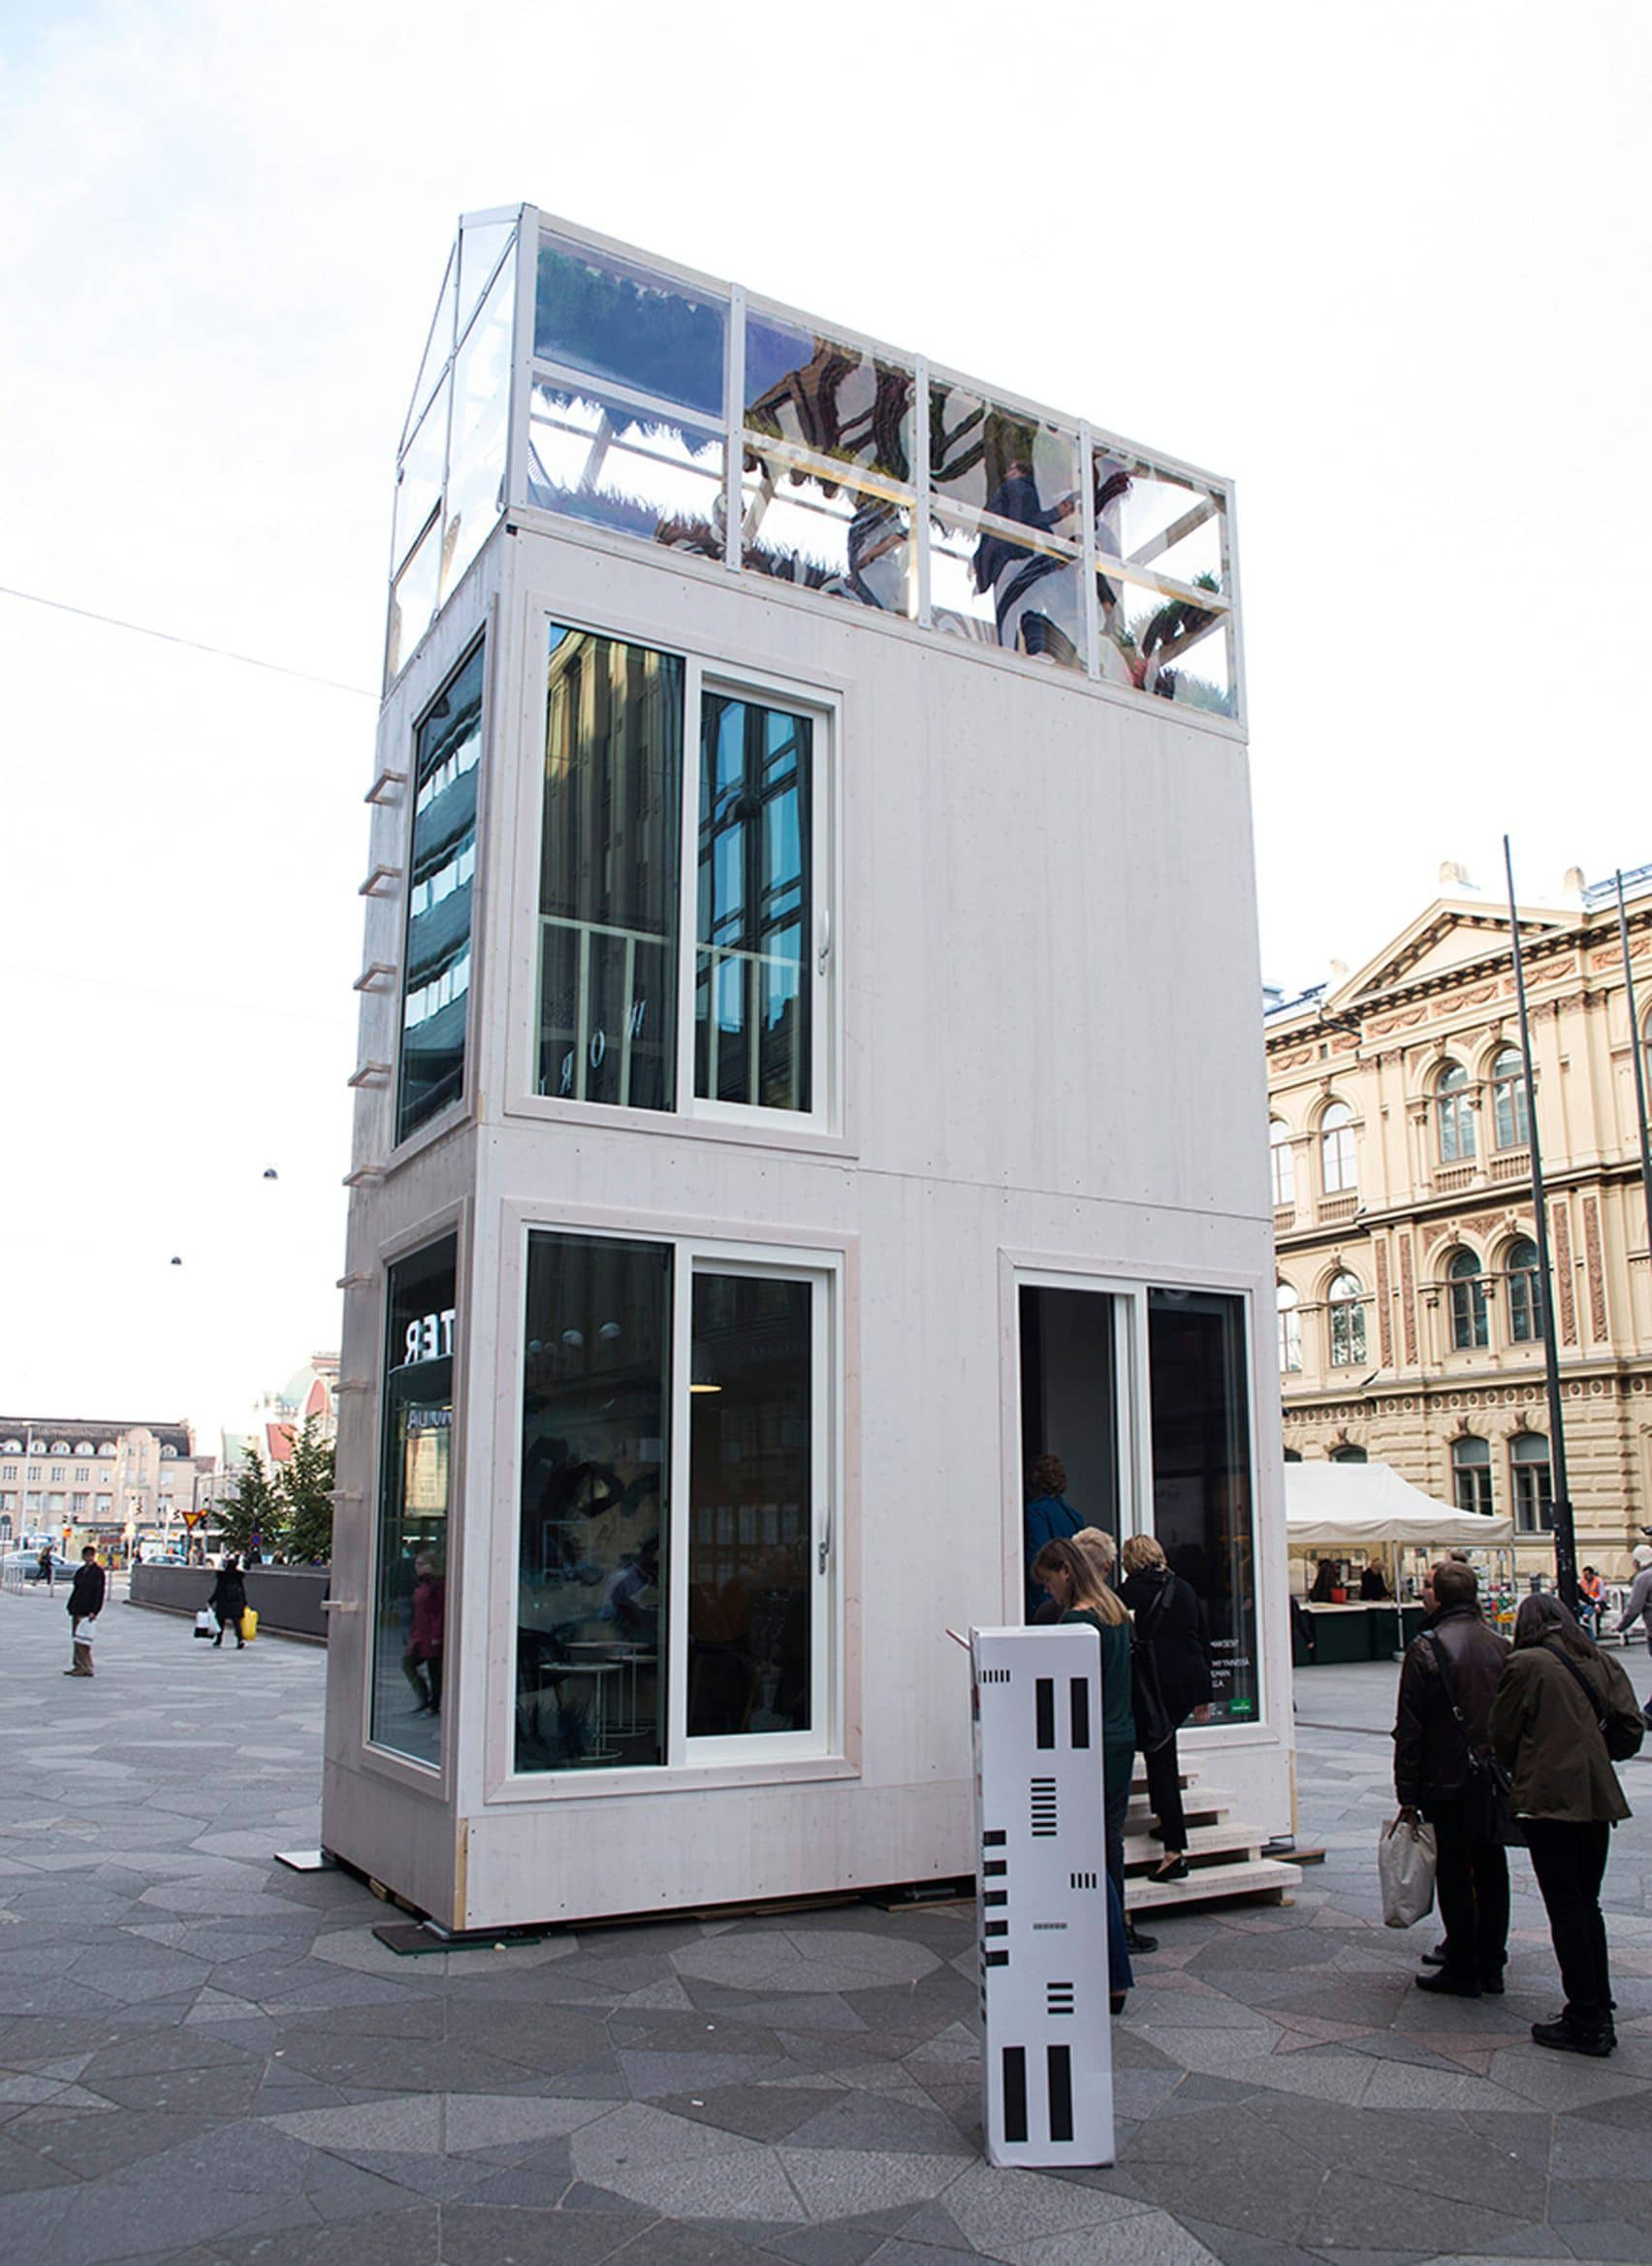 """The tiny house movements seeks to address a number of ecological and social difficulties, one of which is the overcrowding of urban spaces. One fascinating tiny house developed to do just that is the Tikku by Casagrande Laboratory,  also known simply as """"The Stick."""""""